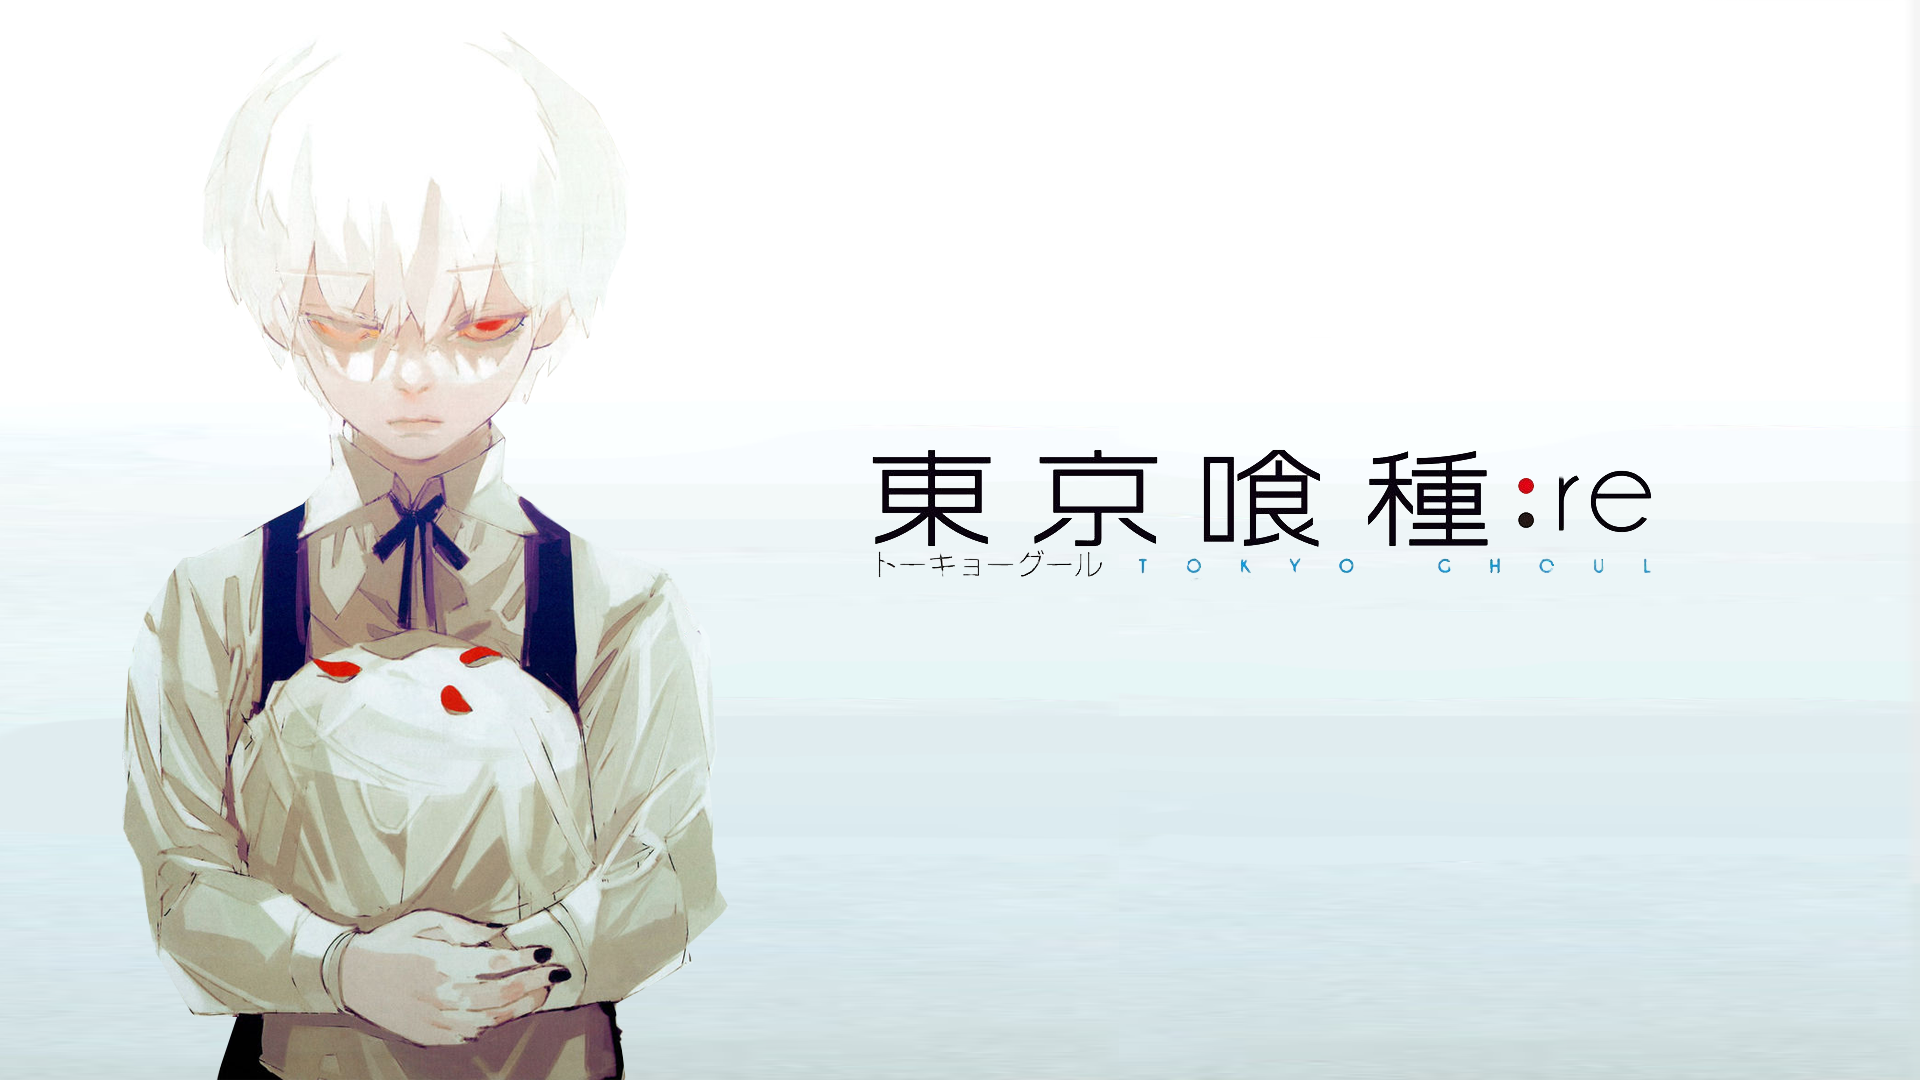 Anyone Excited For Tokyo Ghoul Re Season 2 Tokyo Ghoul Fanpop